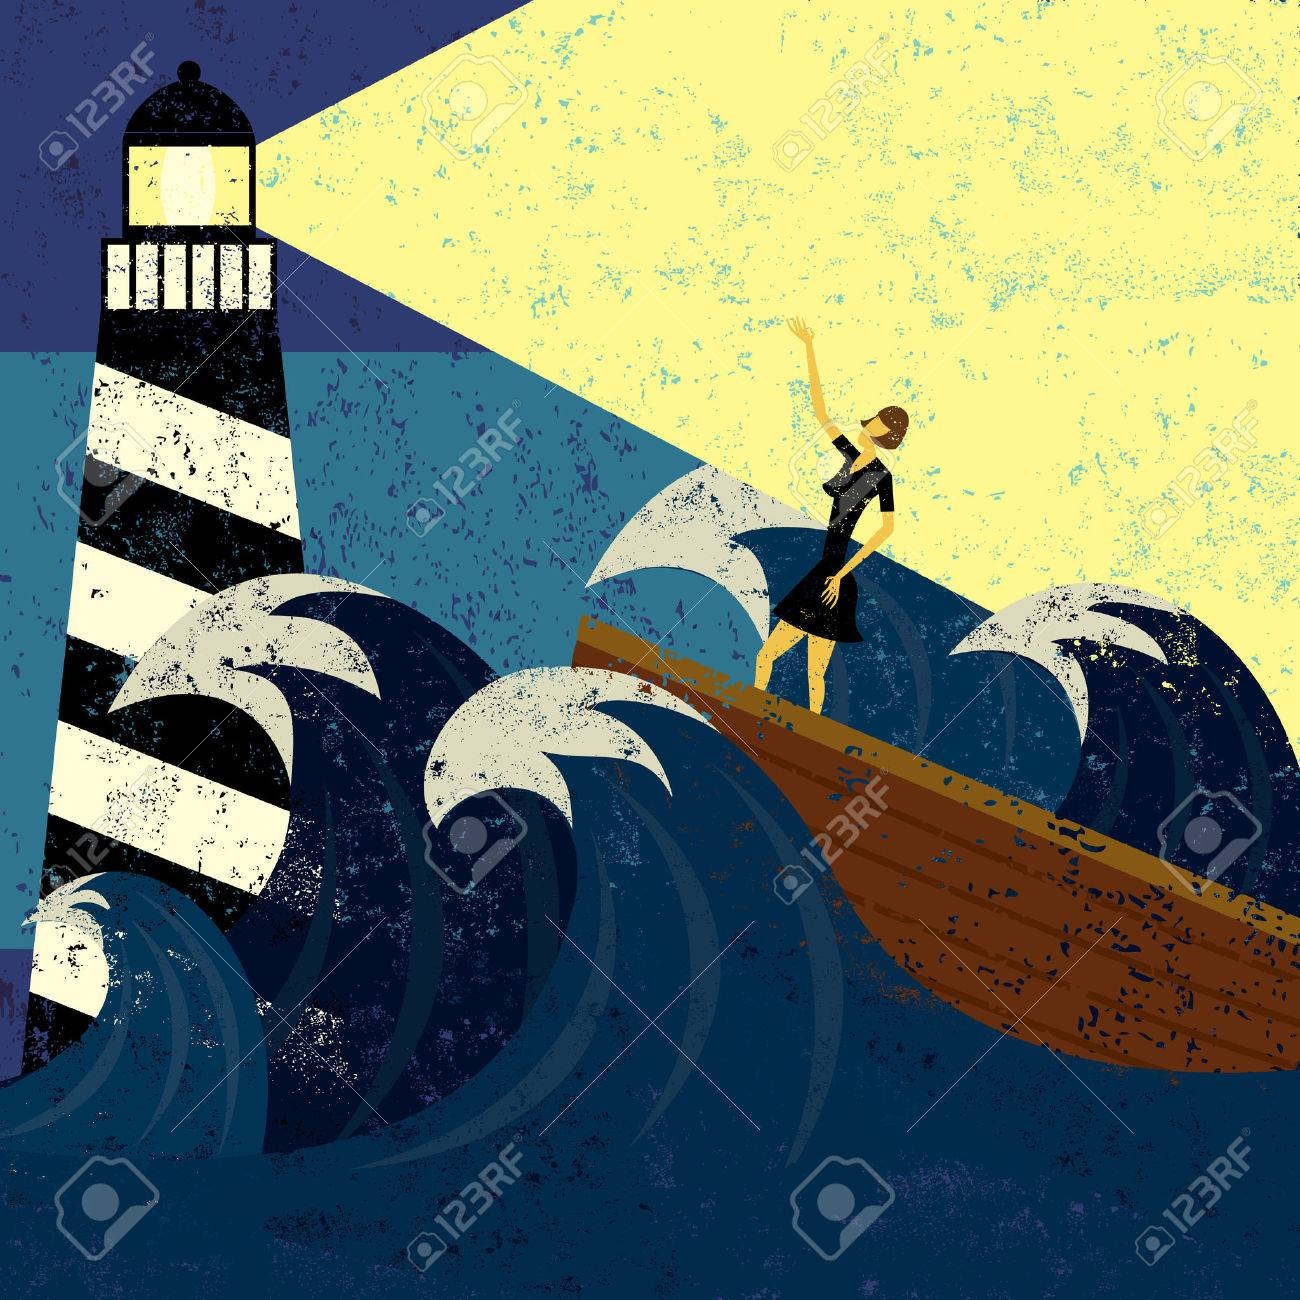 Guidance in Stormy Seas, A lighthouse providing guidance to a boat in a stormy sea. The lighthouse, woman & boat, and the waves are on a separate labeled layer from the background. - 37451912